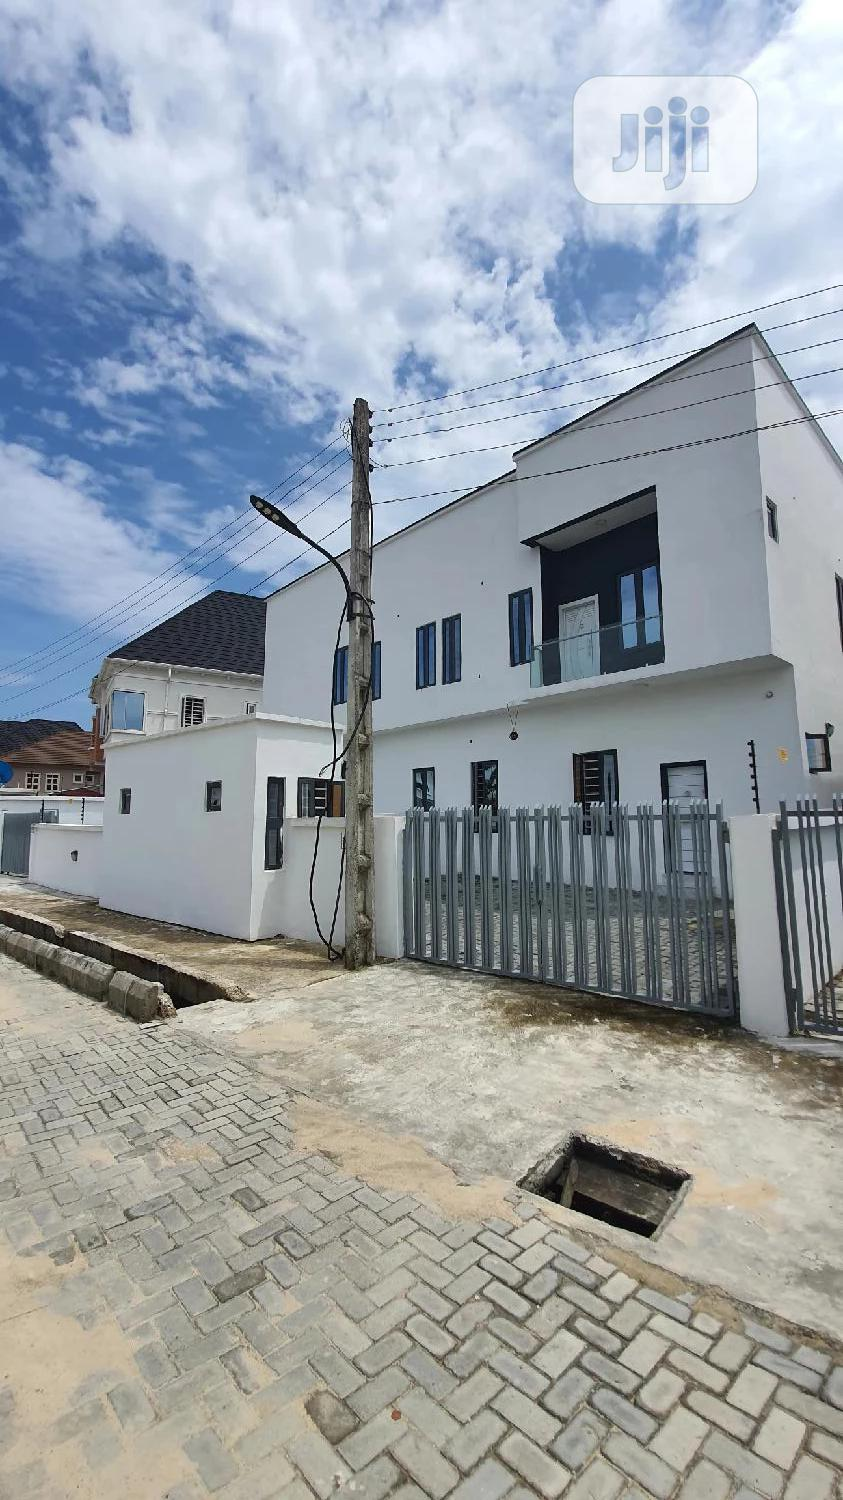 4BEDROOM Spaciousduplex Beautifully Built With Amazing Color | Houses & Apartments For Rent for sale in Chevron, Lekki, Nigeria